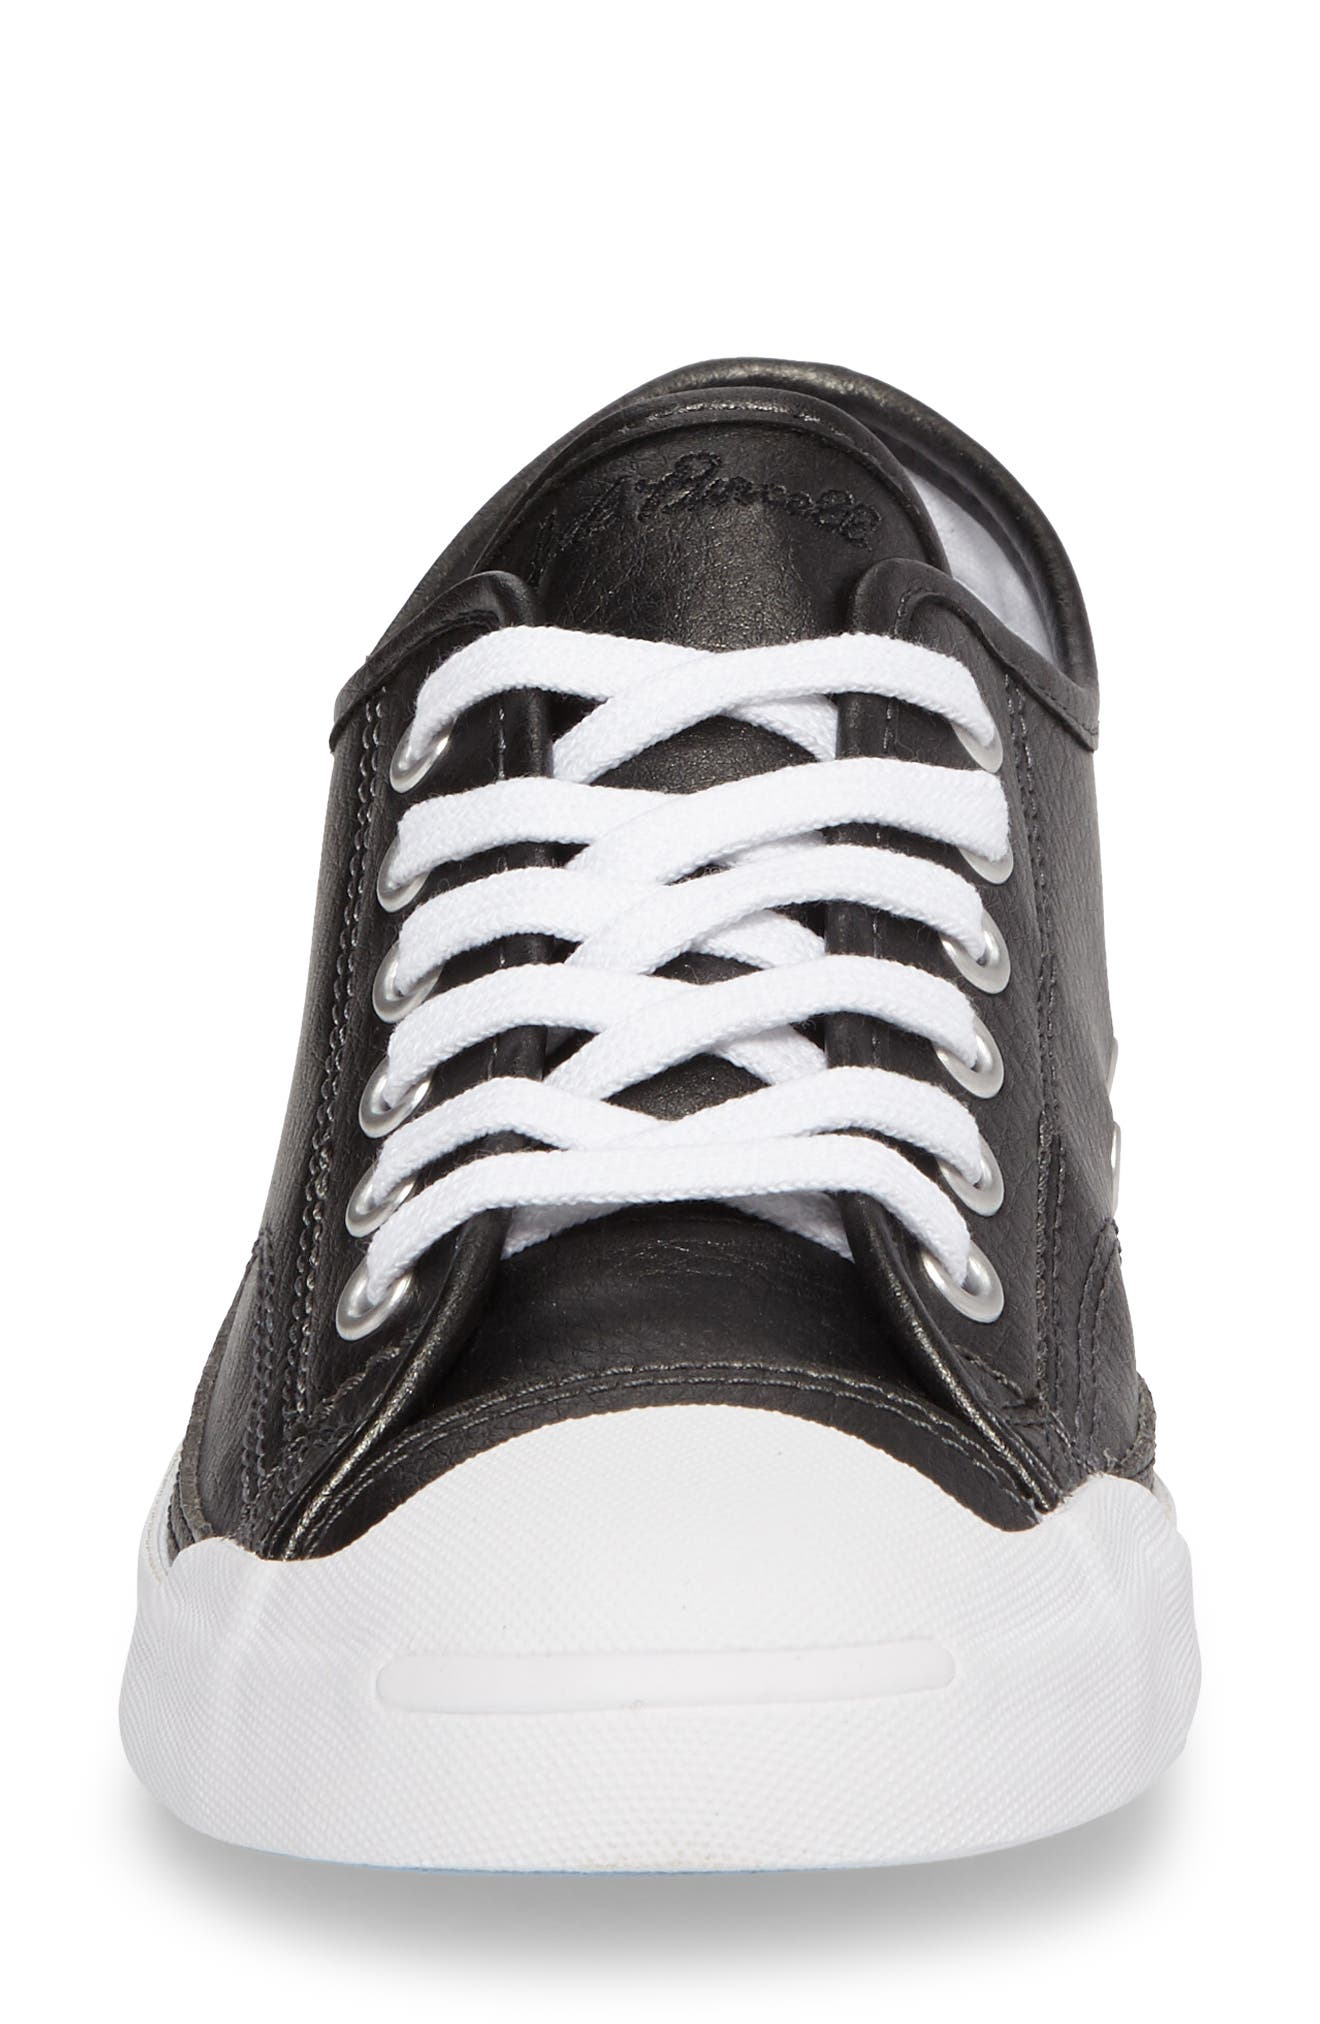 Jack Purcell Low Top Sneaker,                             Alternate thumbnail 4, color,                             001